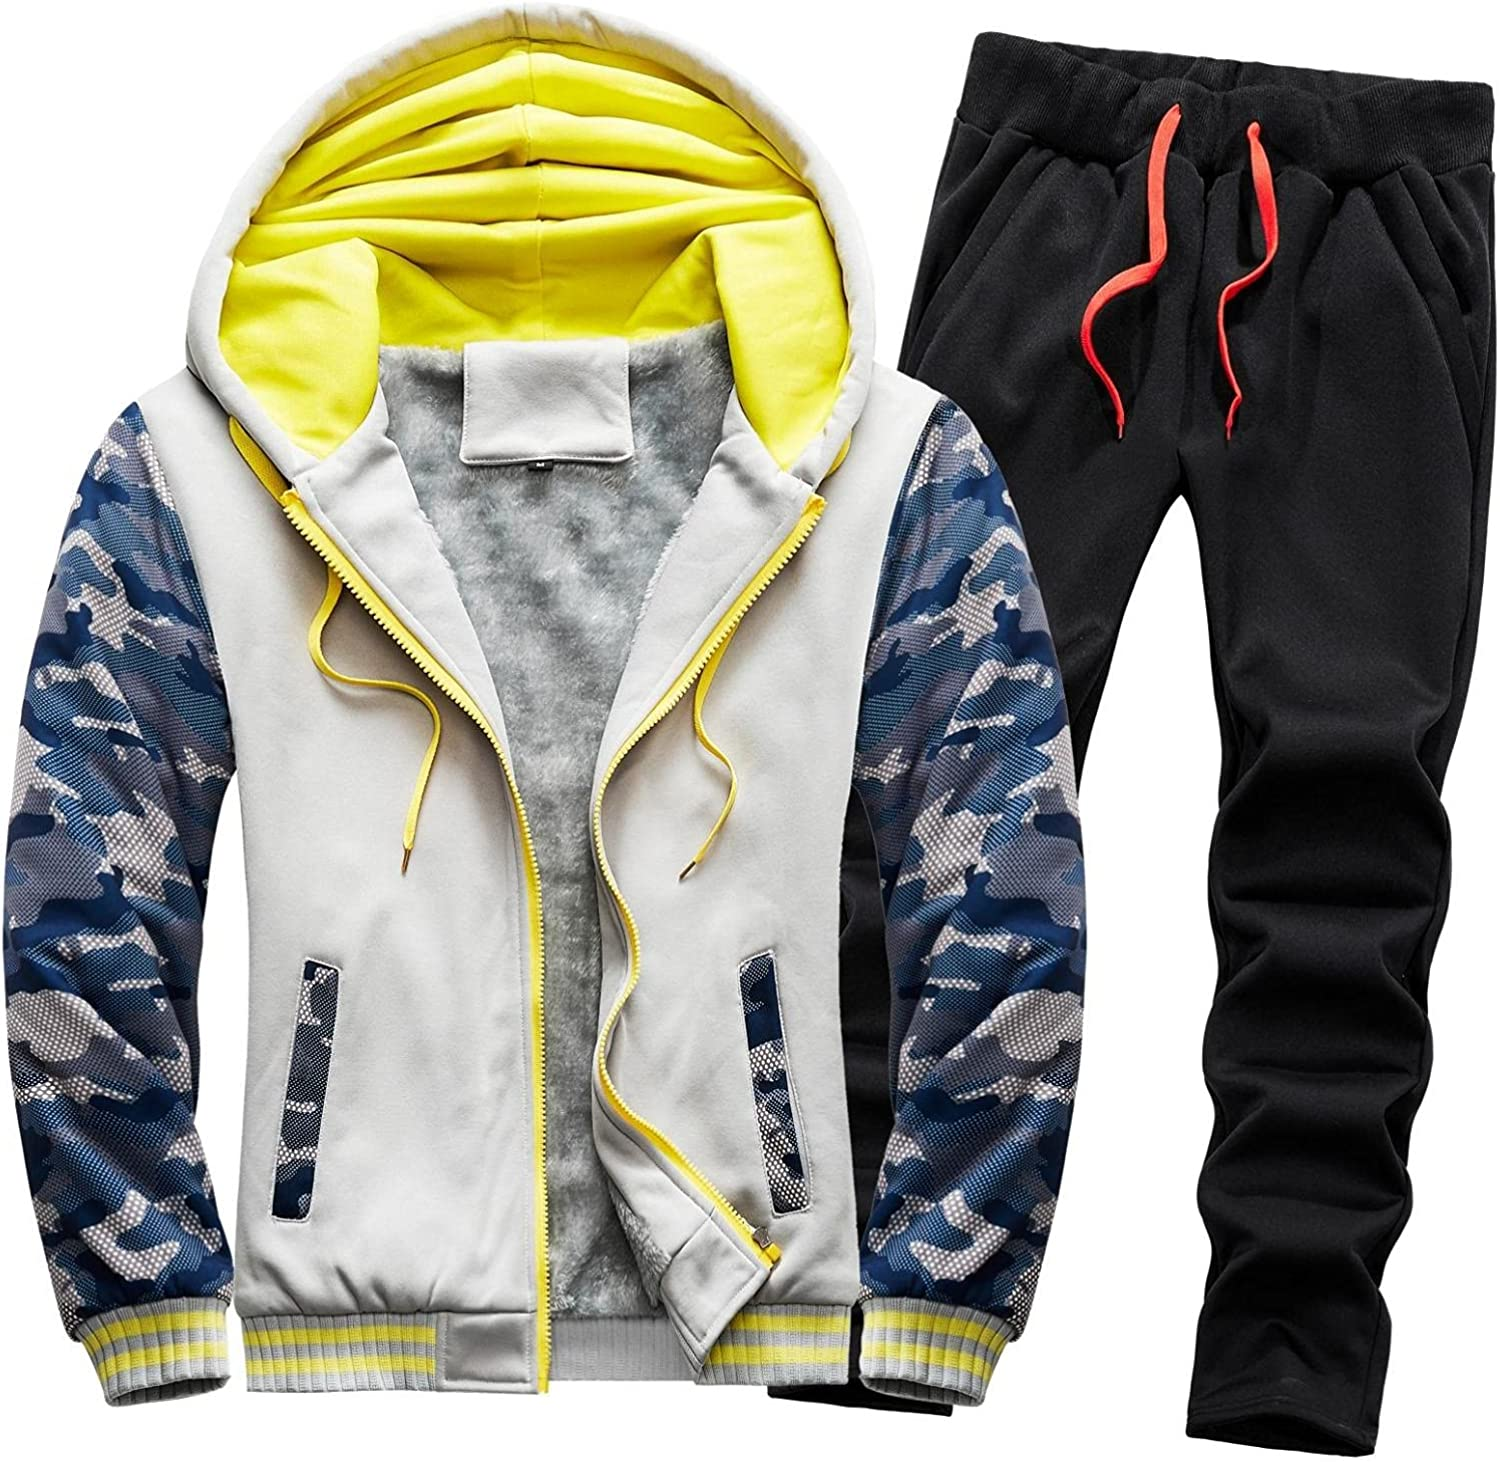 Men's 2 Piece Hooded Jacket Long Sleeve Full Zip Fuzzy Hoodies Outwear & Thicken Pants Sets Fall Winter Thermal Outfits